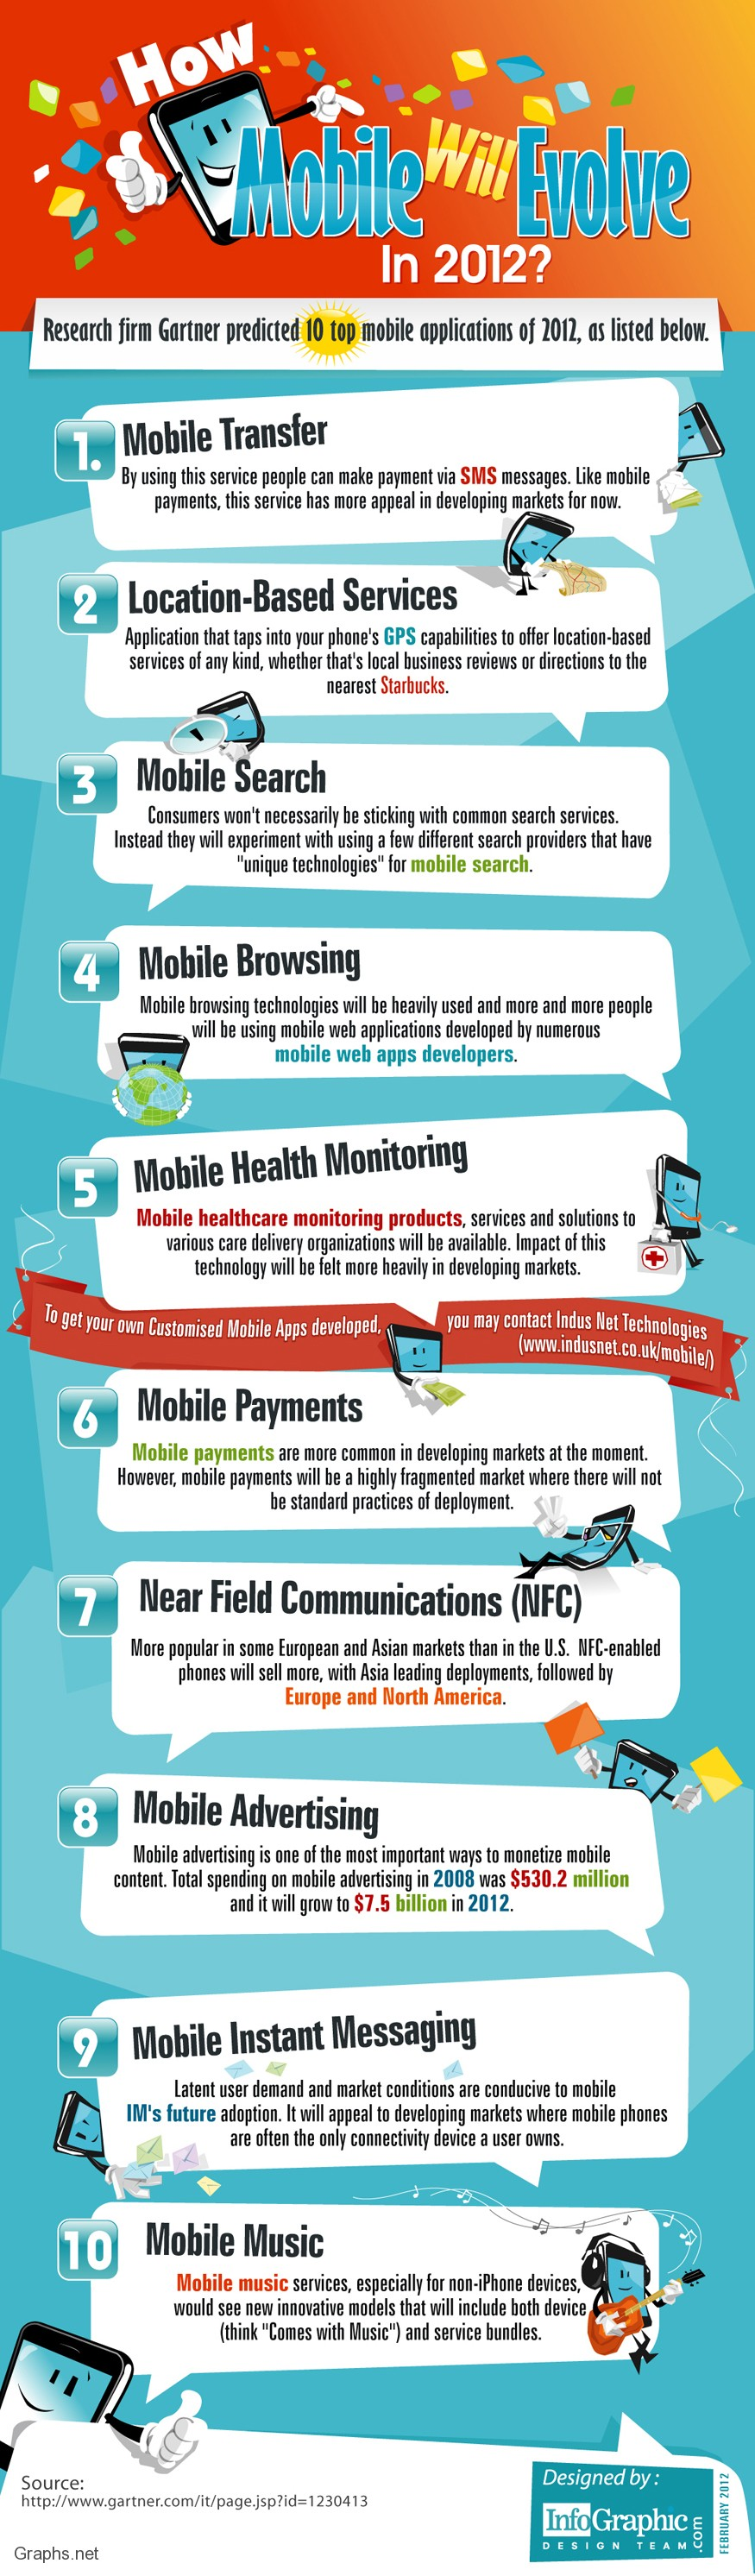 Top 10 Mobile Applications For the Year 2012